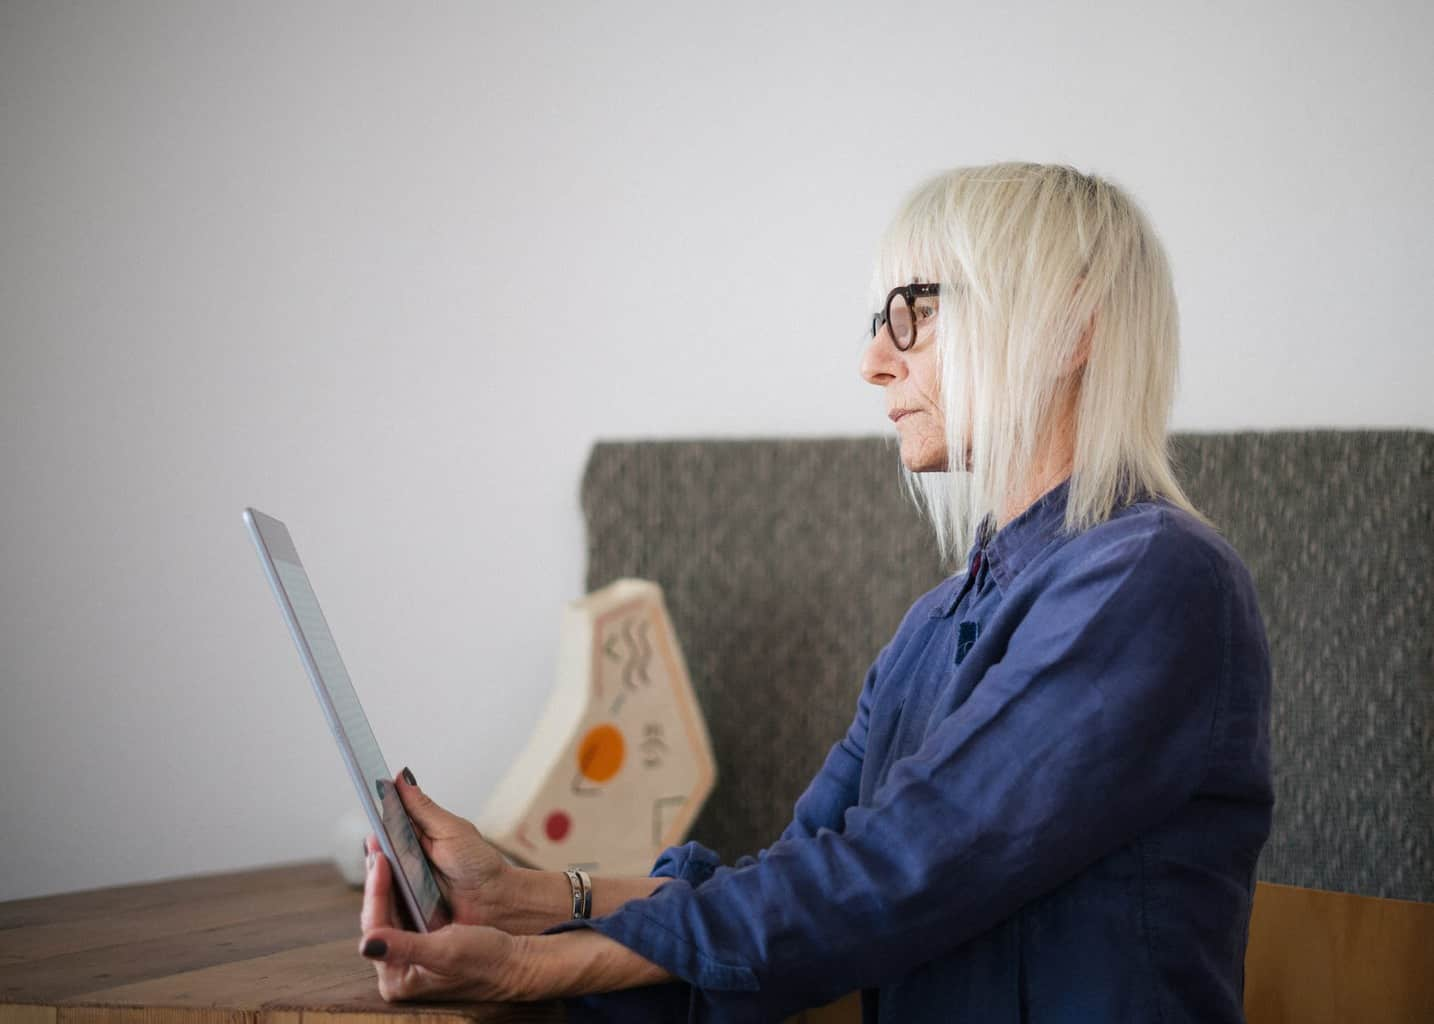 aged woman using tablet while sitting at home